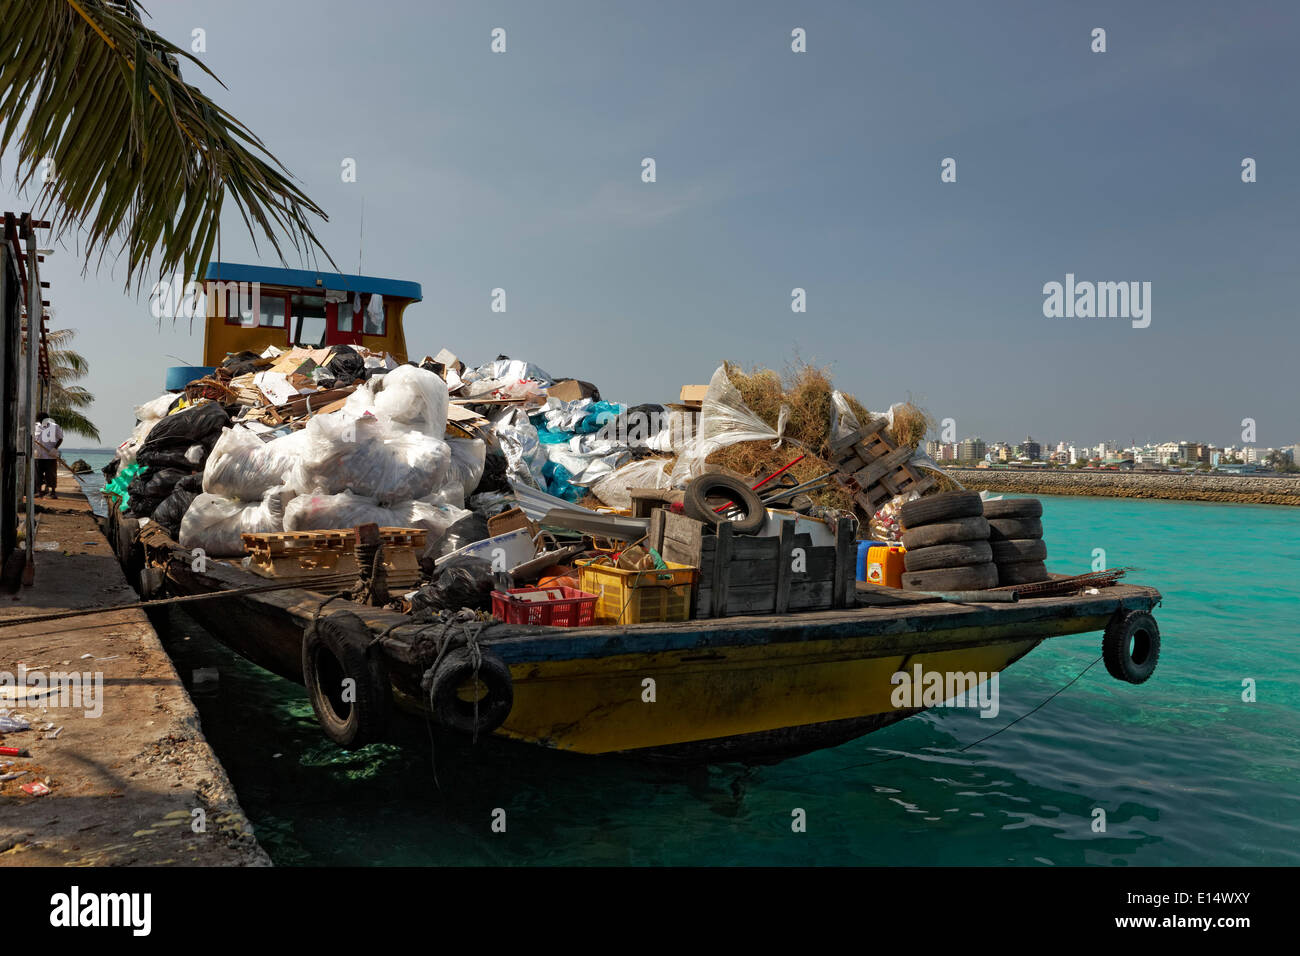 Garbage on a barge, Hulhulé, North Malé Atoll, Indian Ocean, Maldives - Stock Image